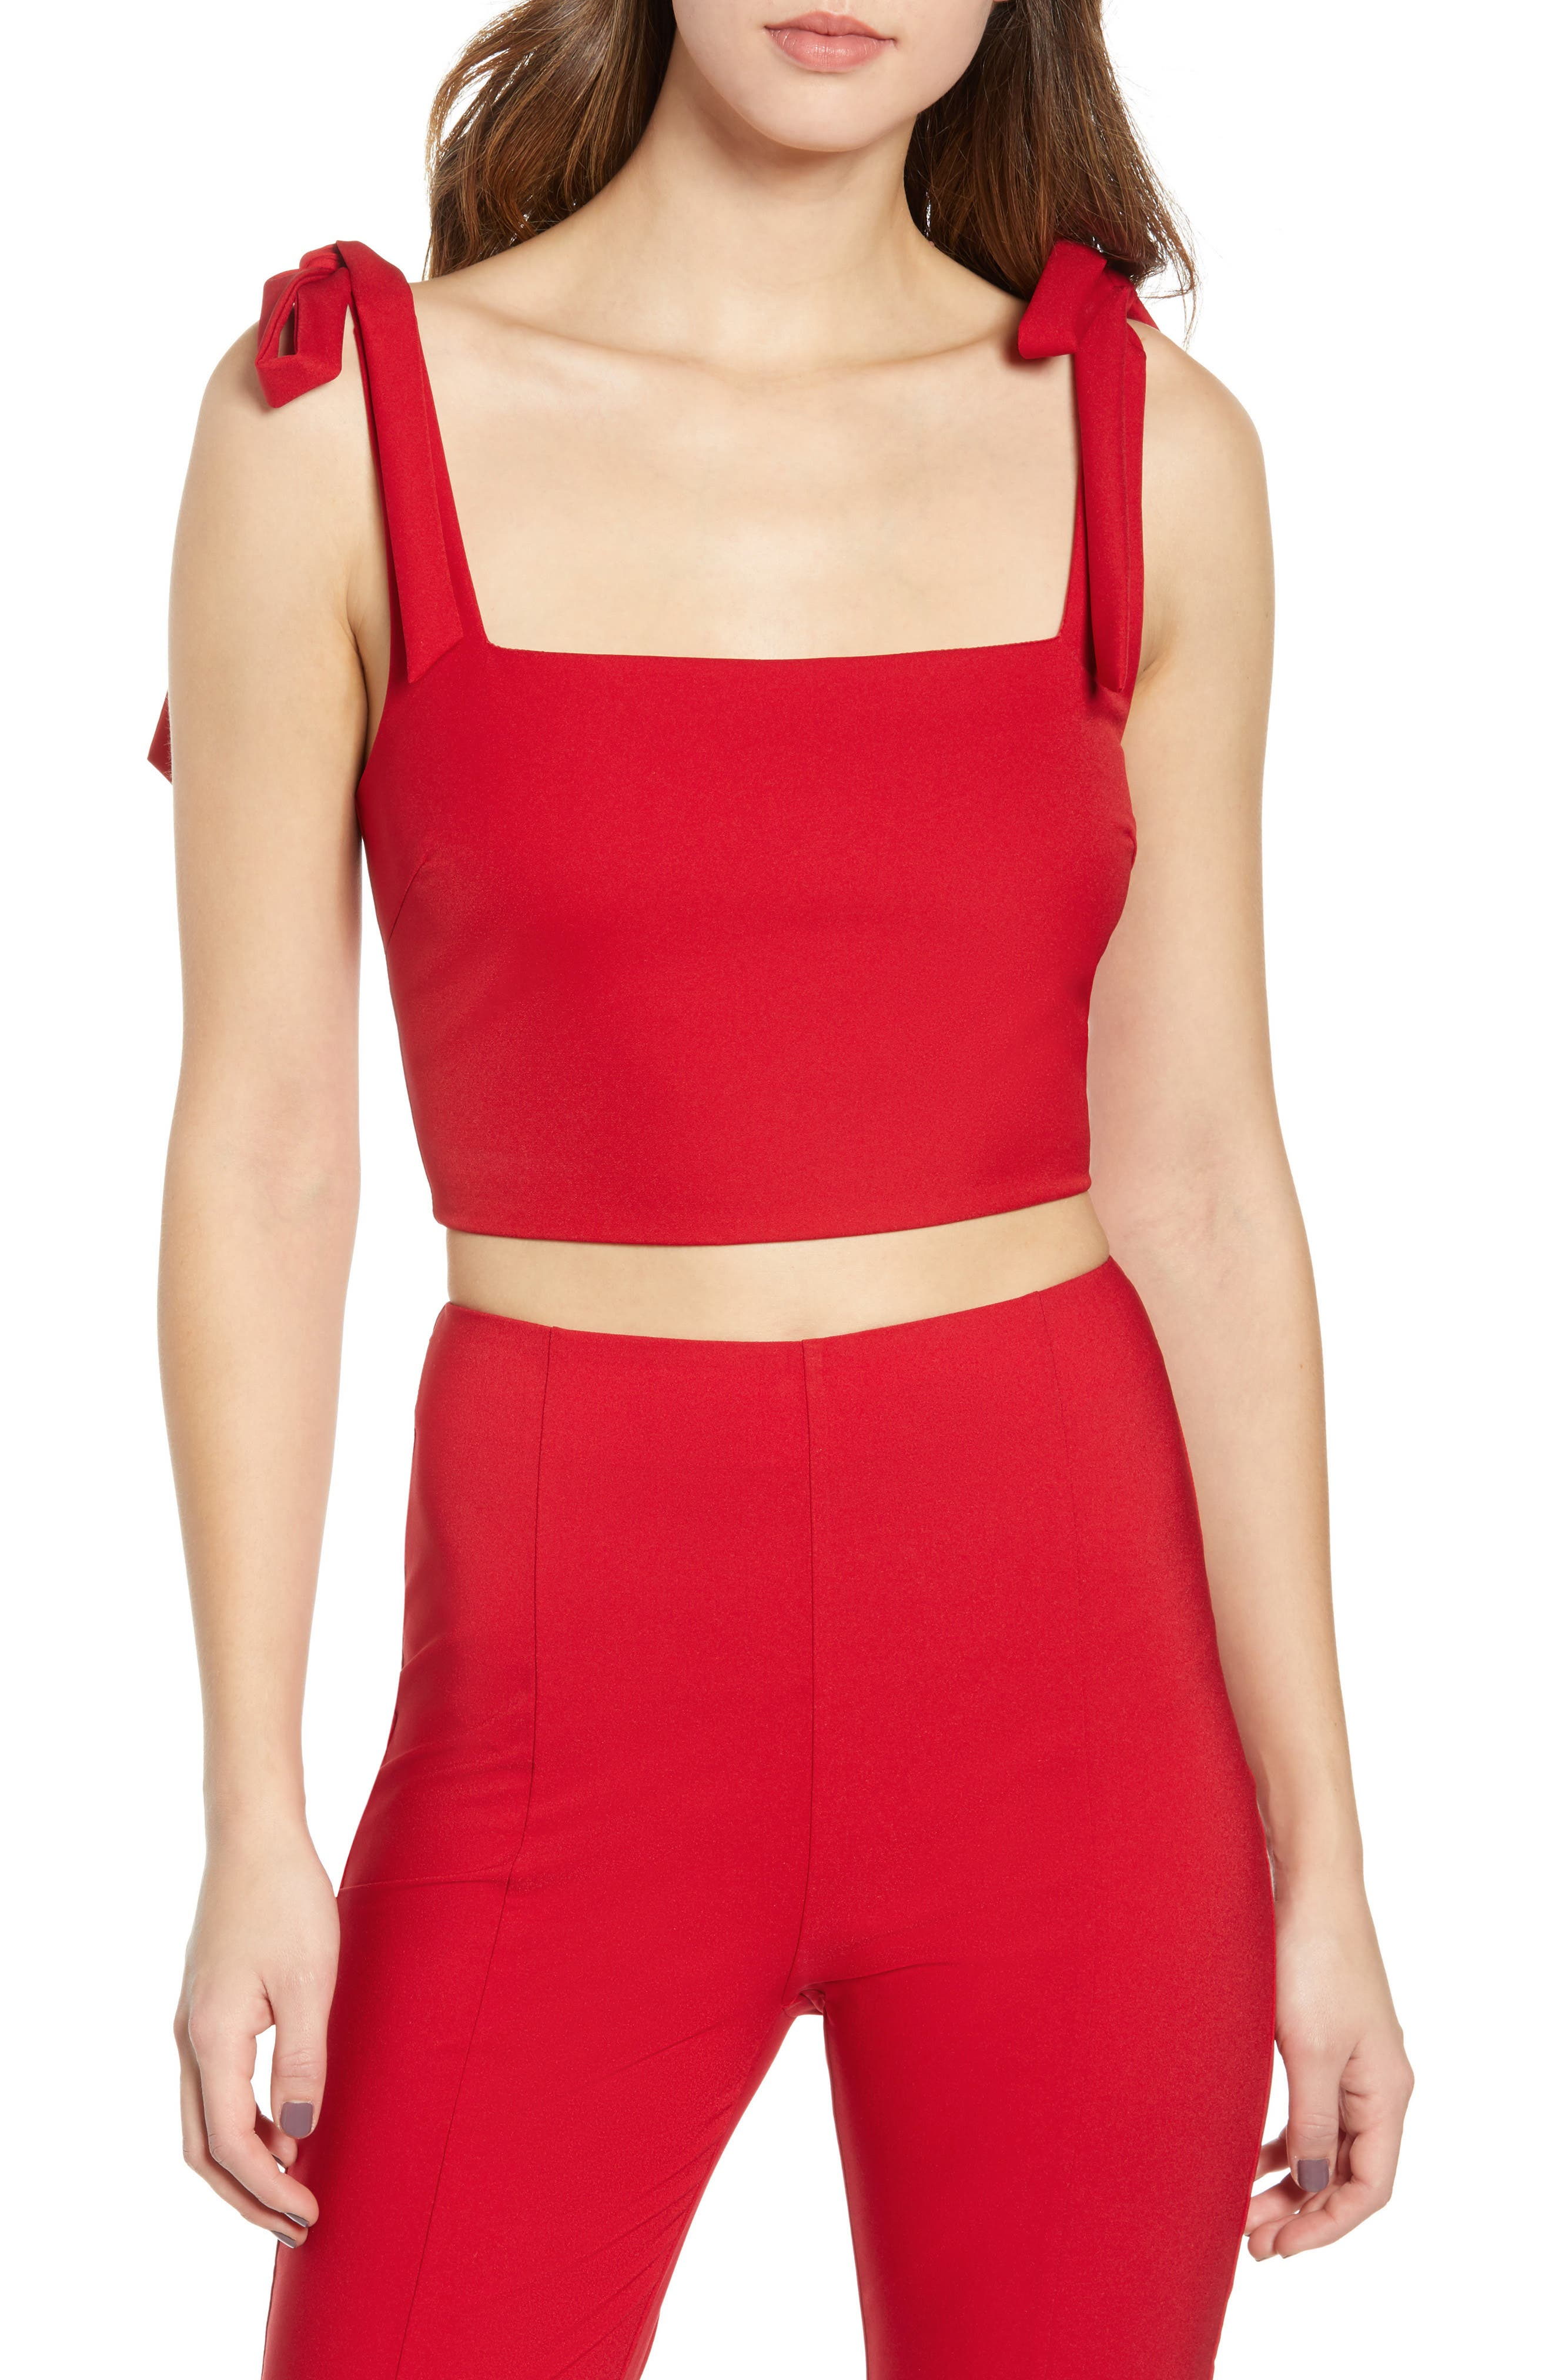 TIGER MIST,                             Kinsley Crop Top,                             Main thumbnail 1, color,                             RED